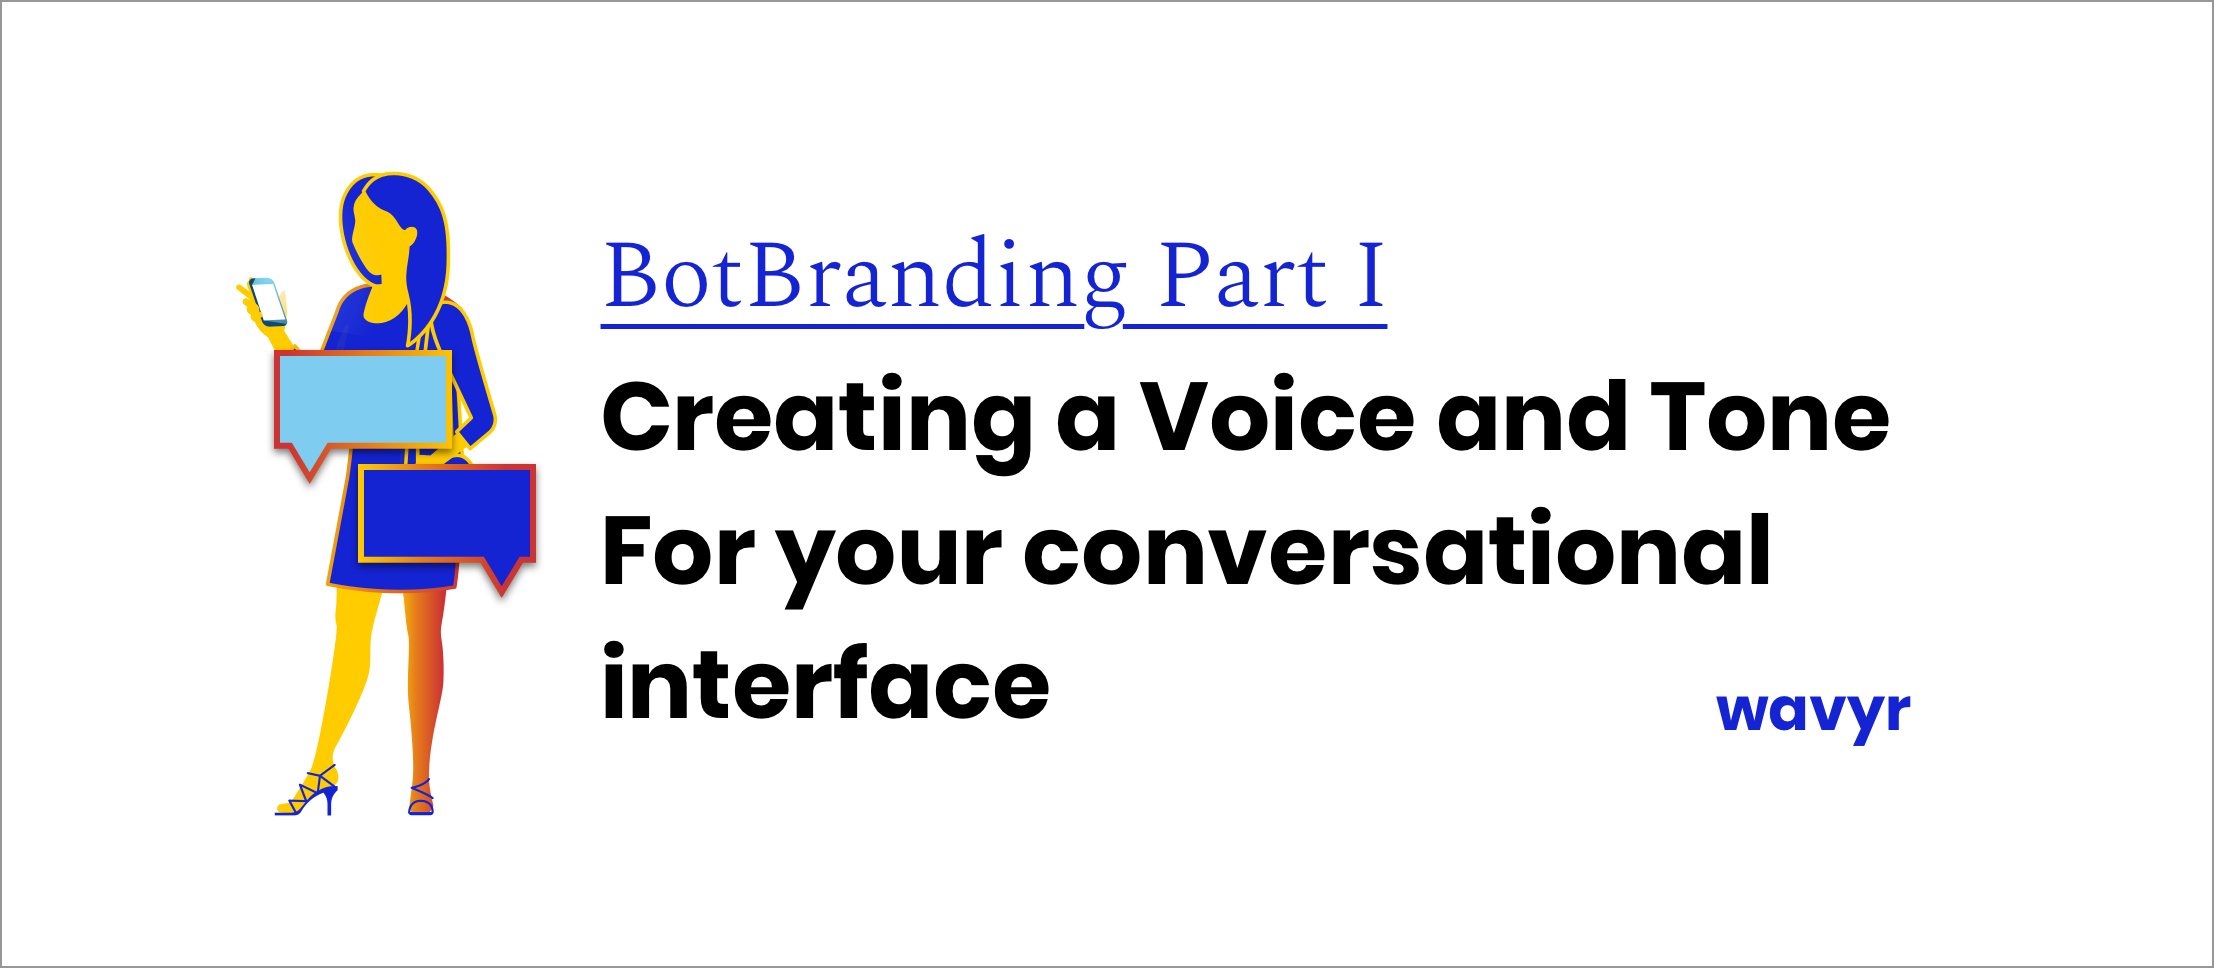 Conversational Interfaces. The use of tone and voice